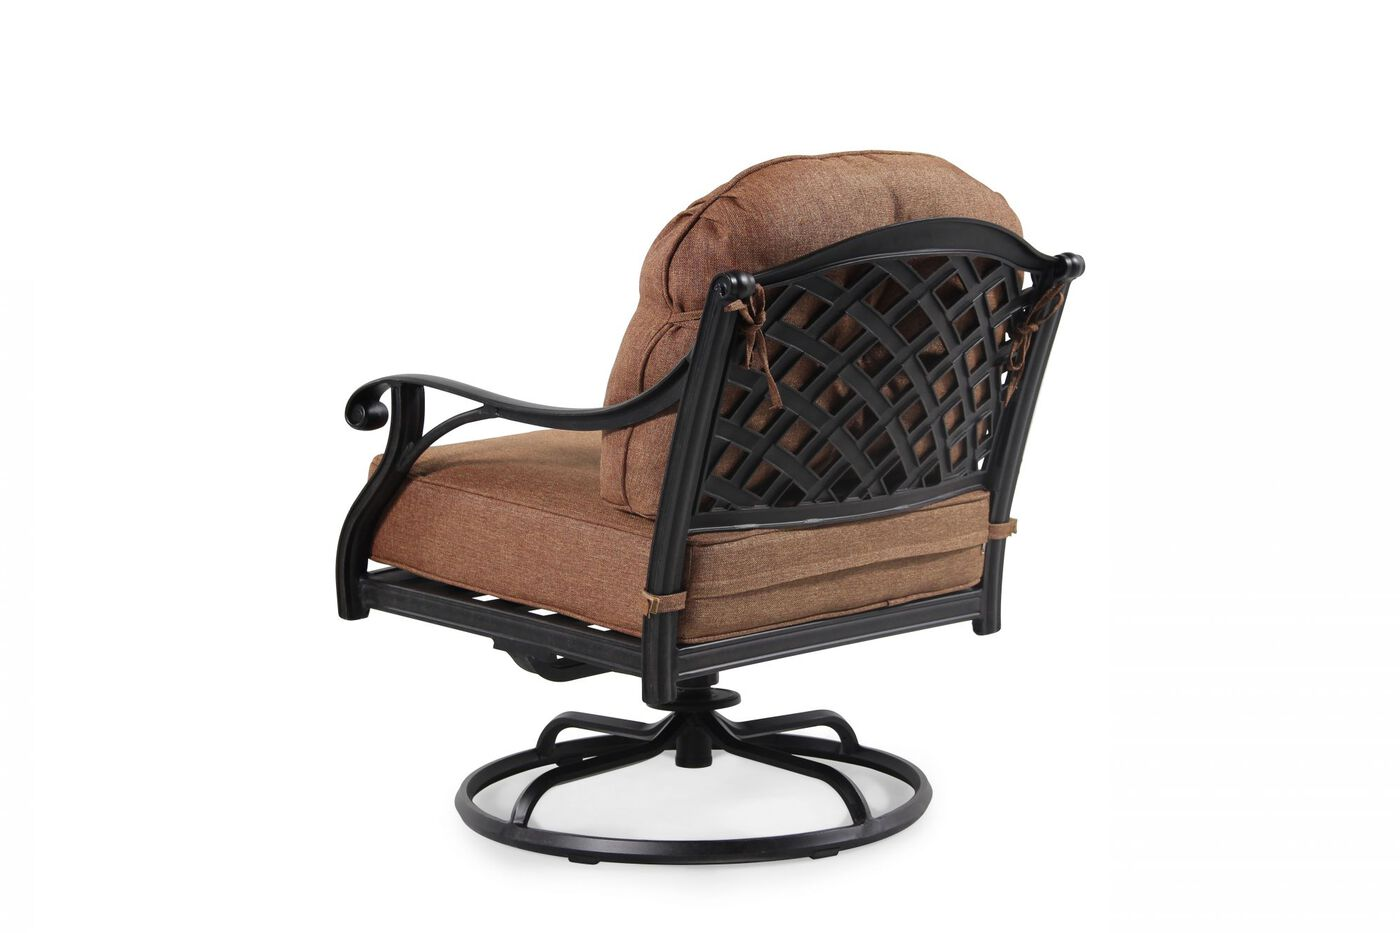 Mathis Brothers Patio Furniture world source castle rock patio swivel club chair | mathis brothers